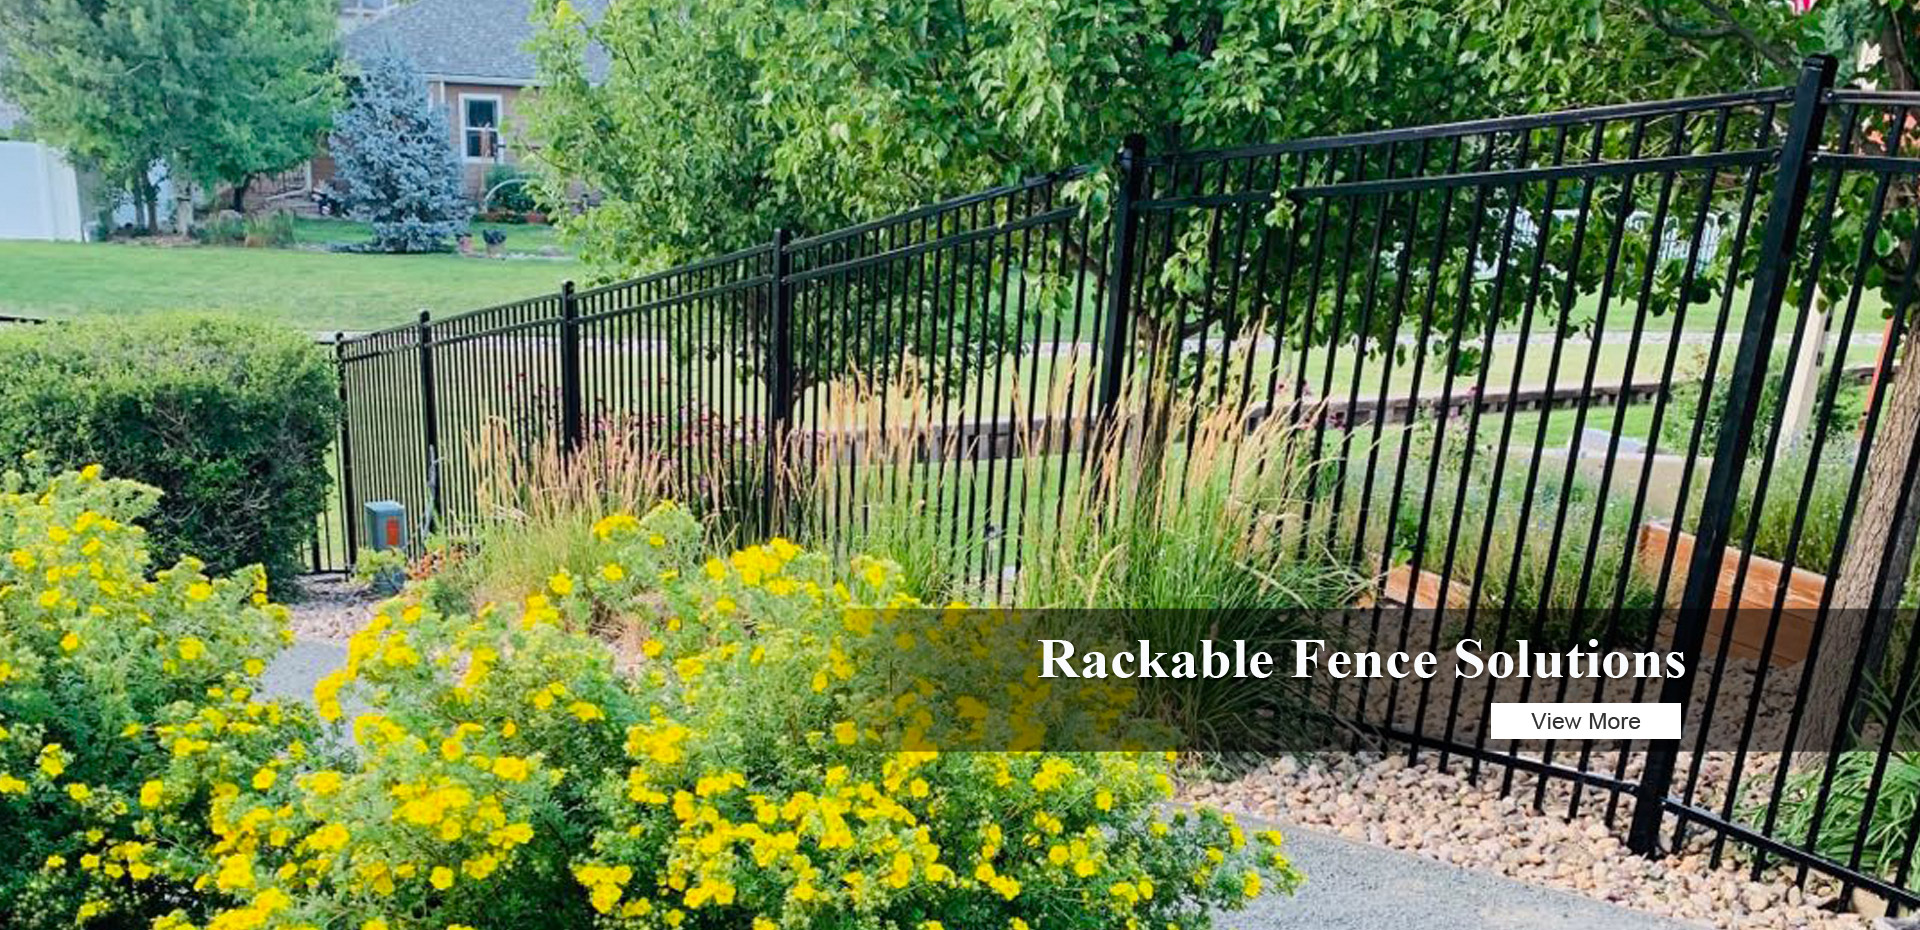 Rackable Fence Solutions for Slope Terrain